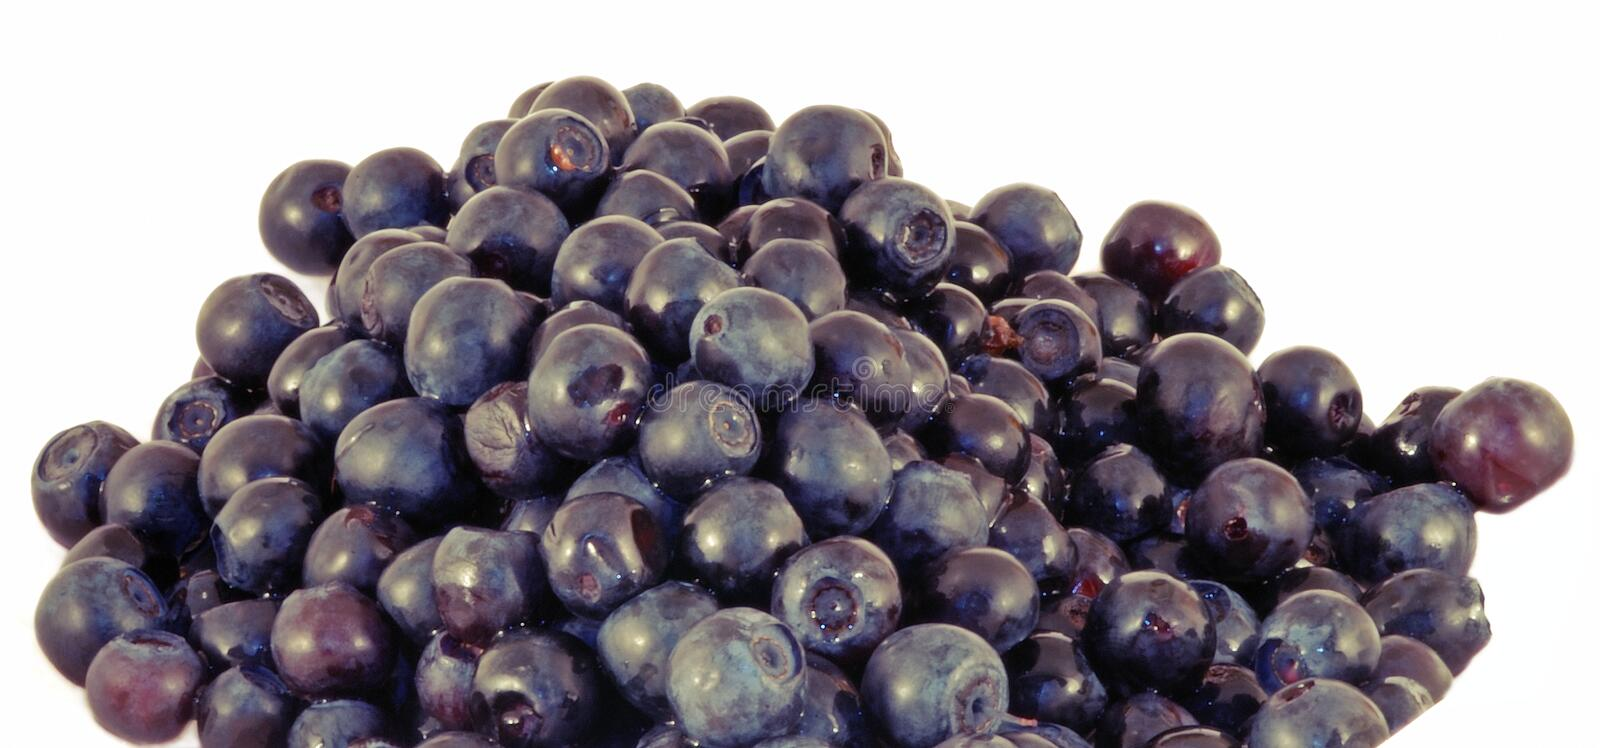 Berrys frais photo stock